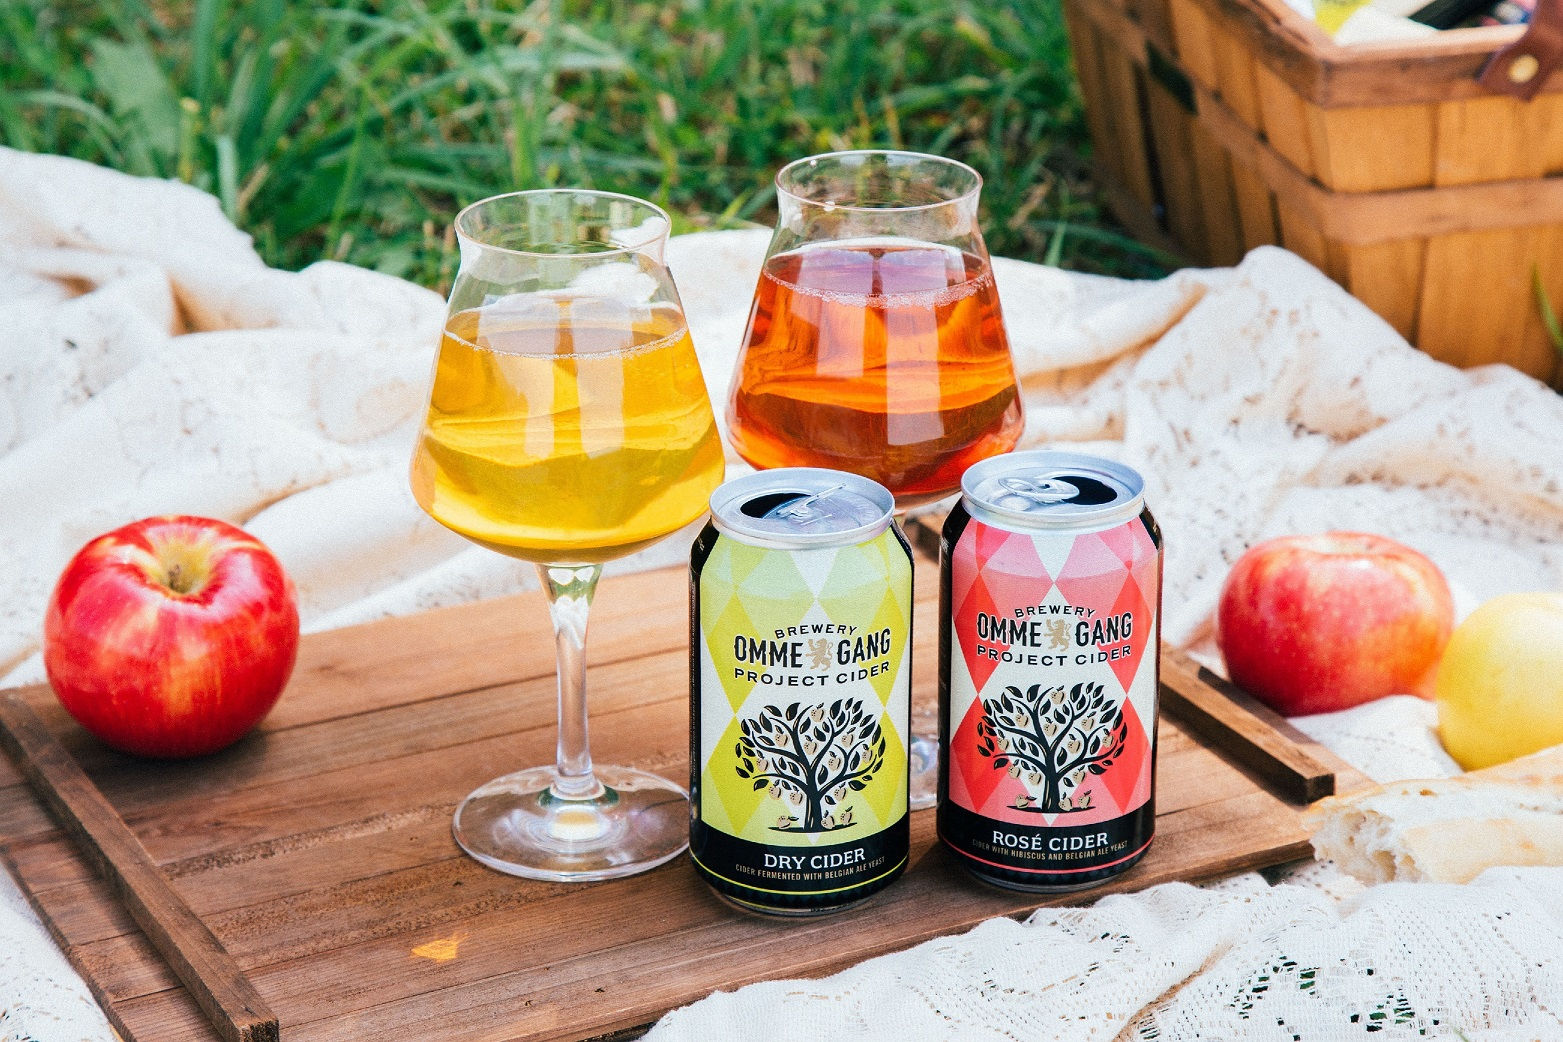 Brewery Ommegang Launches Project Cider with Dry and Rosé. (image courtesy of Brewery Ommegang)